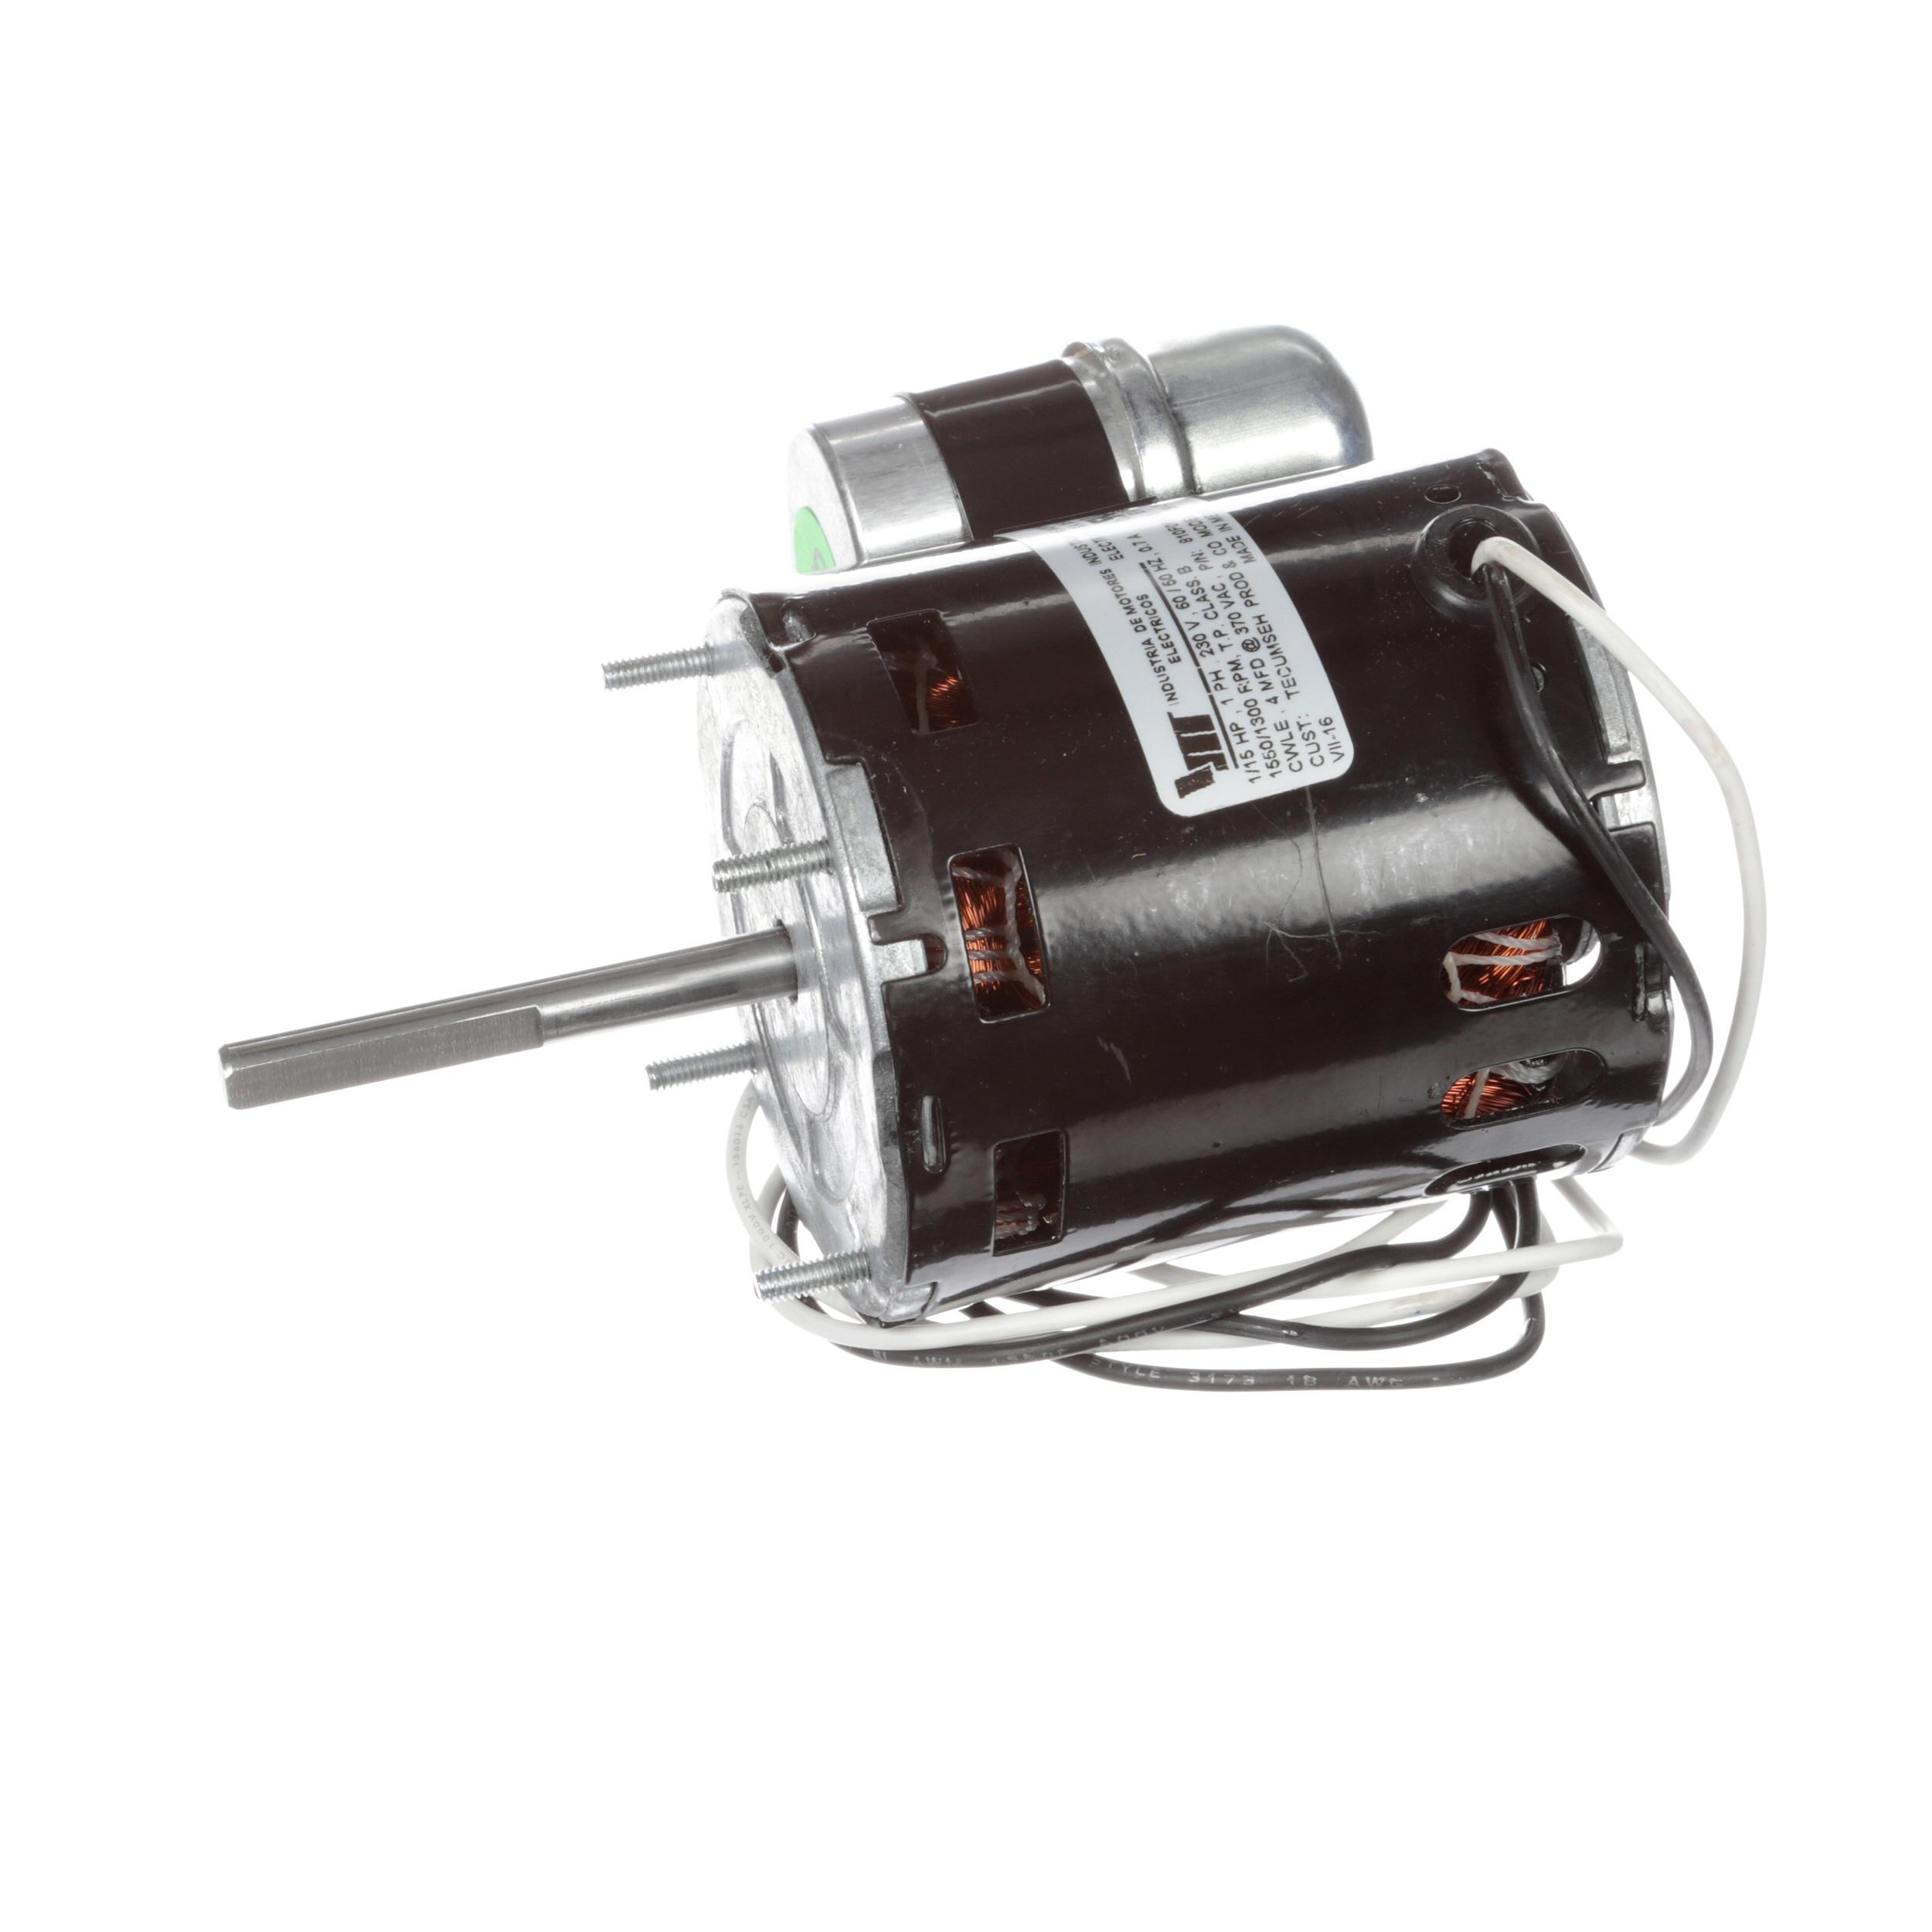 Follett 01018266 Fan Motor 810F050C20